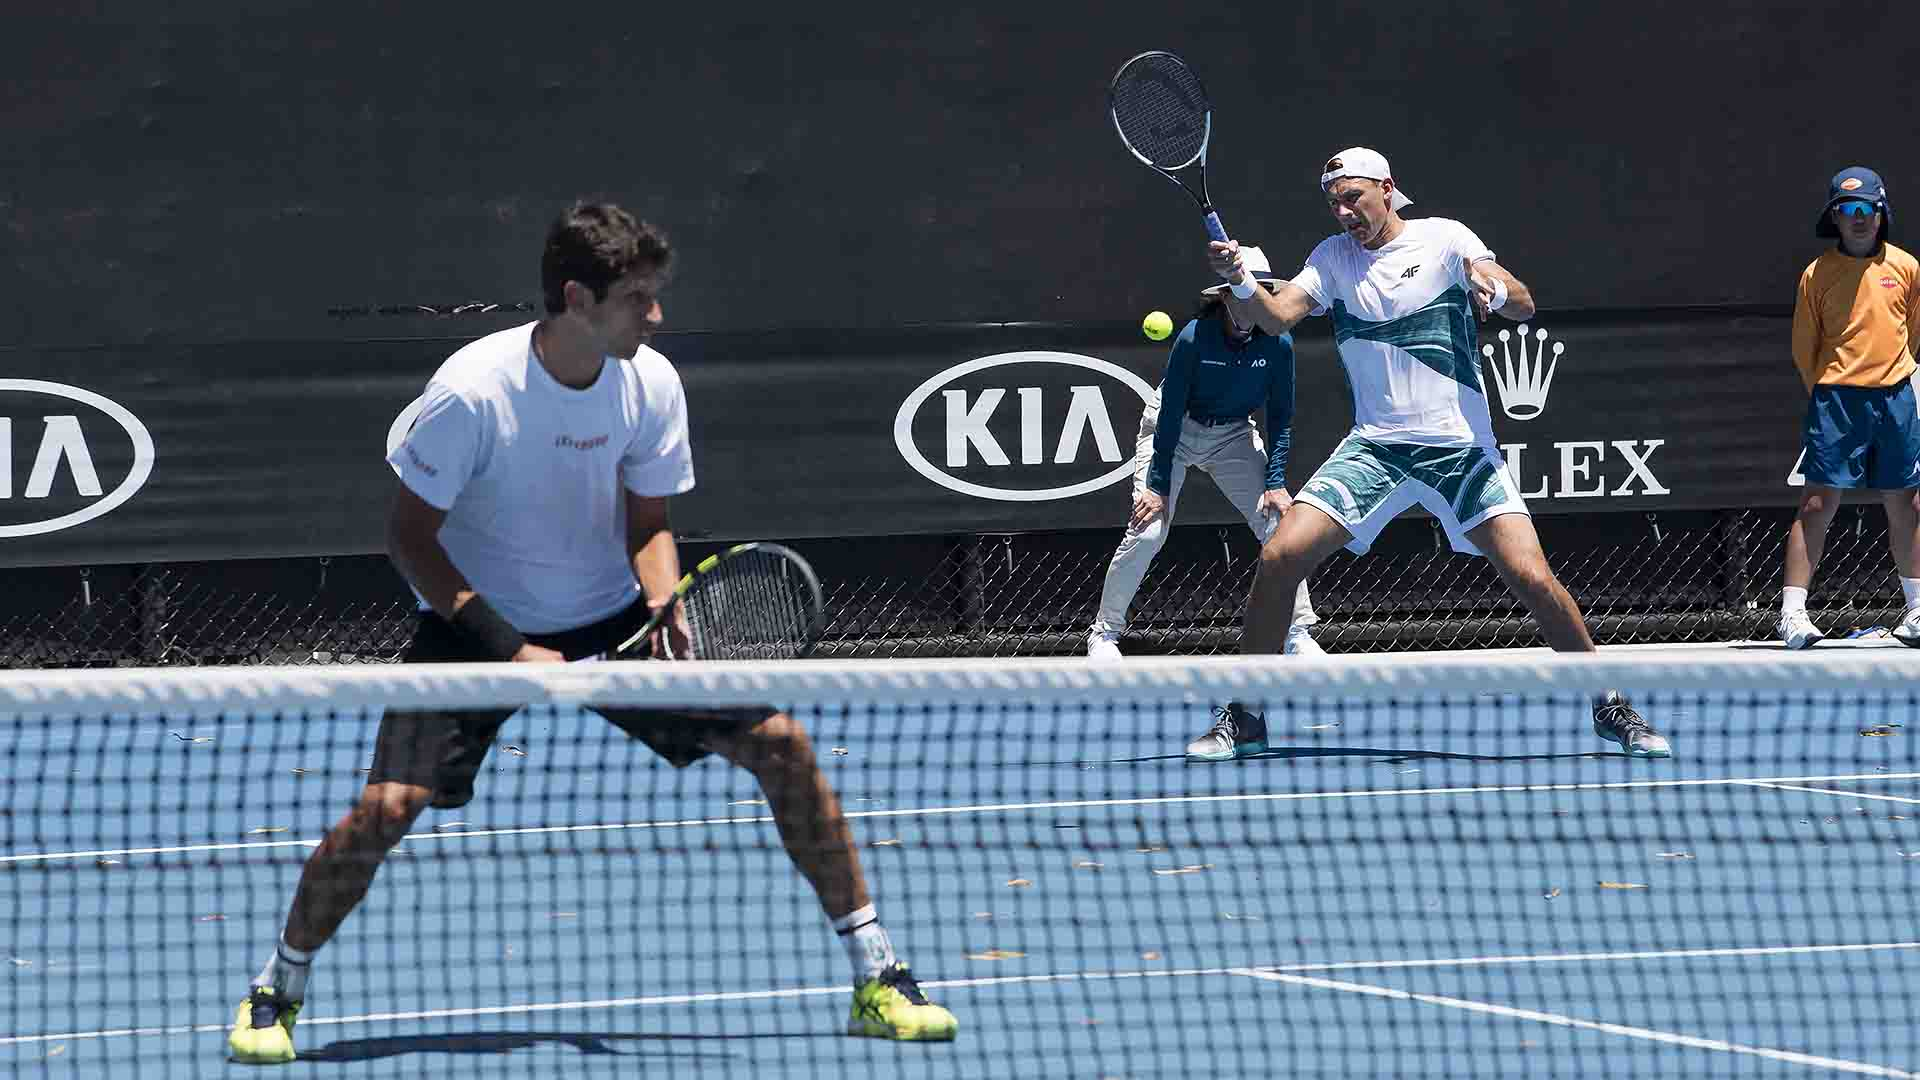 Top seeds Melo/Kubot come from behind to reach the last eight at the #AusOpen.   ➡️ https://t.co/O1VR70rBDc https://t.co/At2D2HKxvO